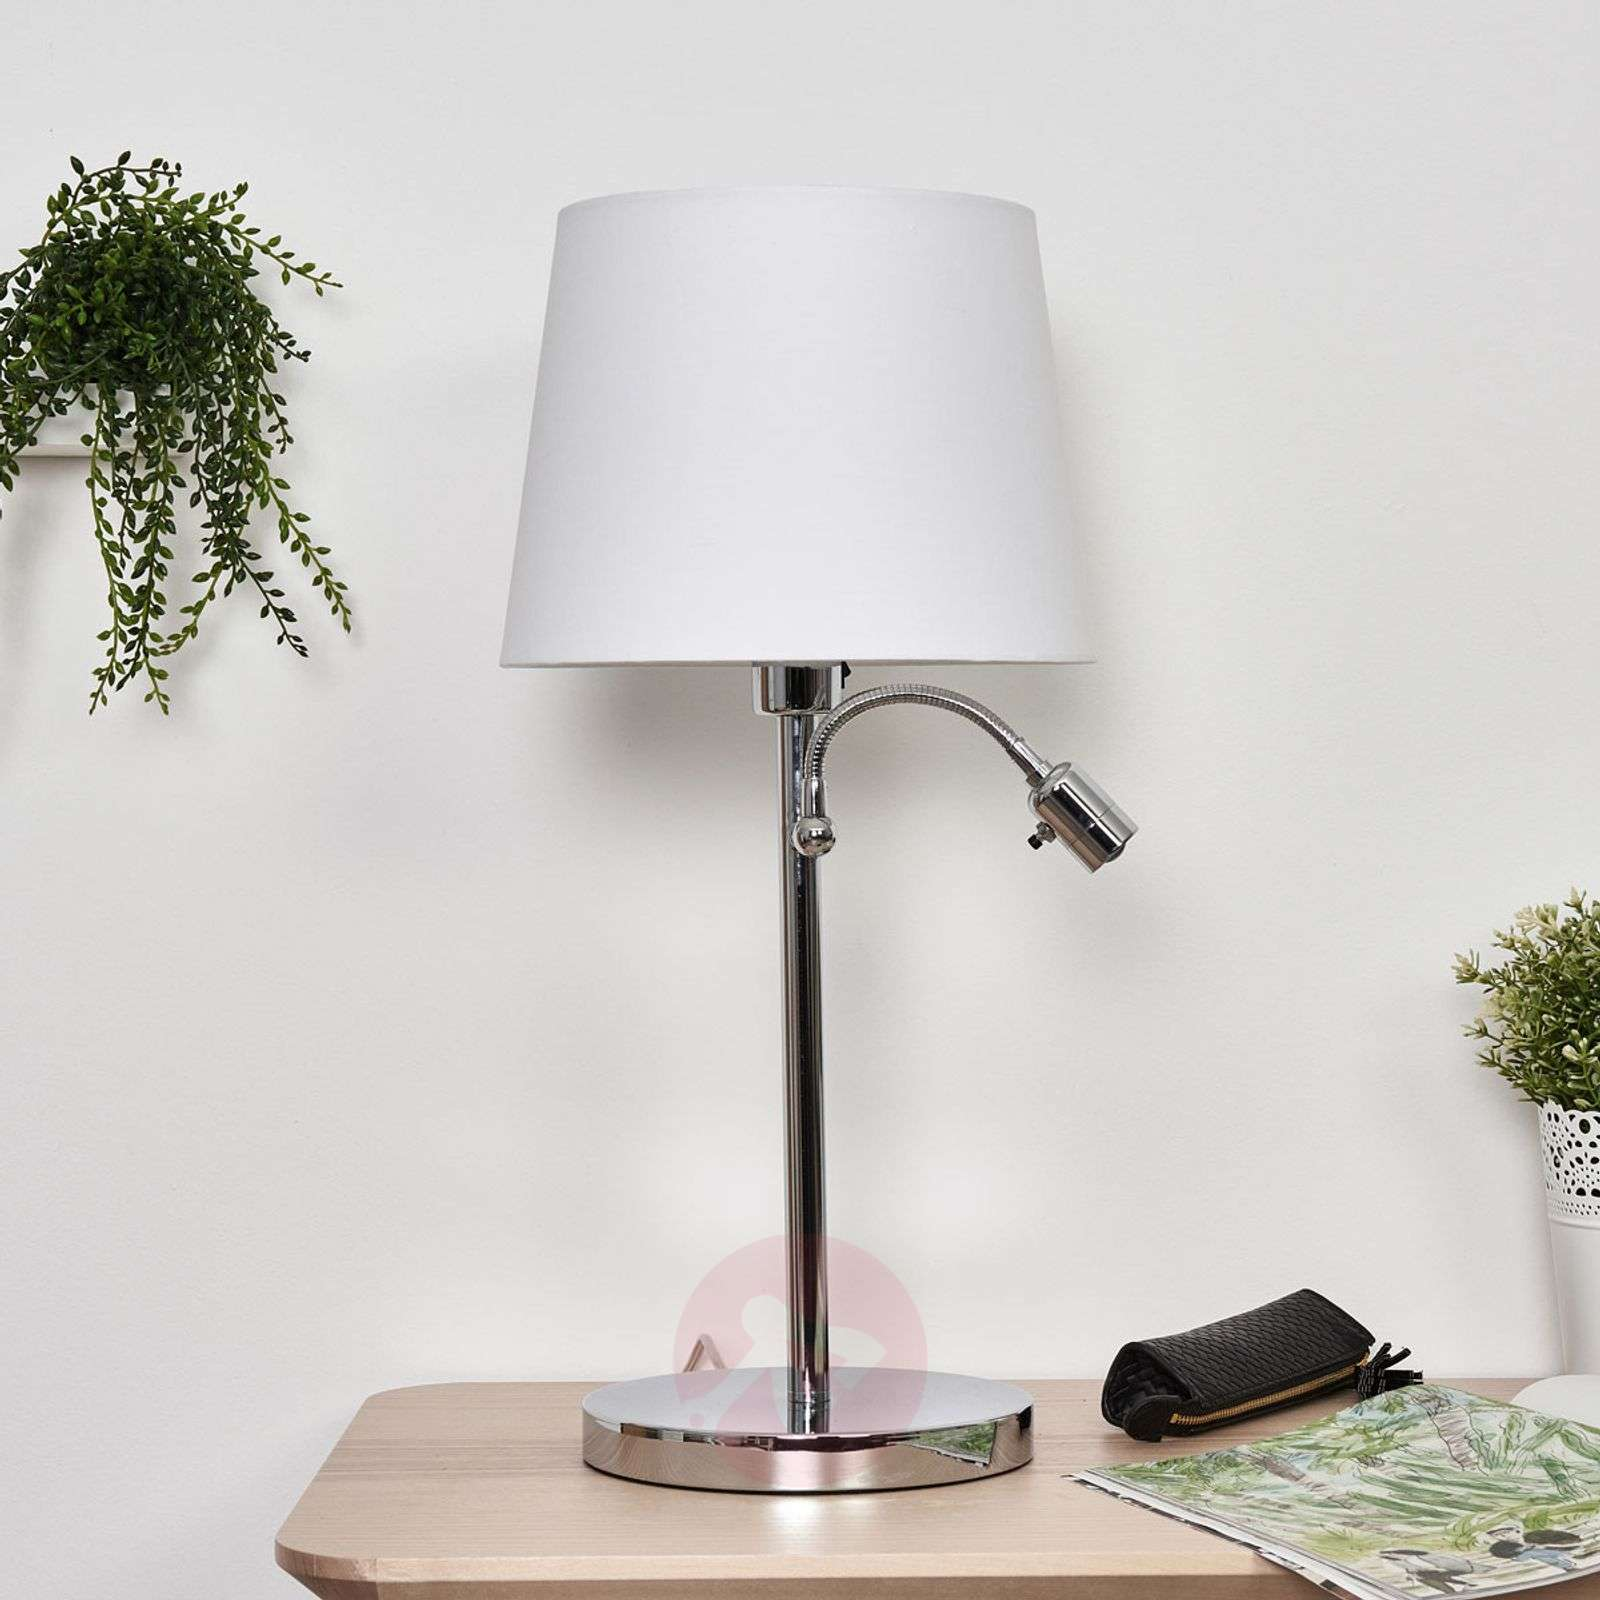 Lavo table lamp with led reading light lights lavo table lamp with led reading light 4580680 01 aloadofball Gallery